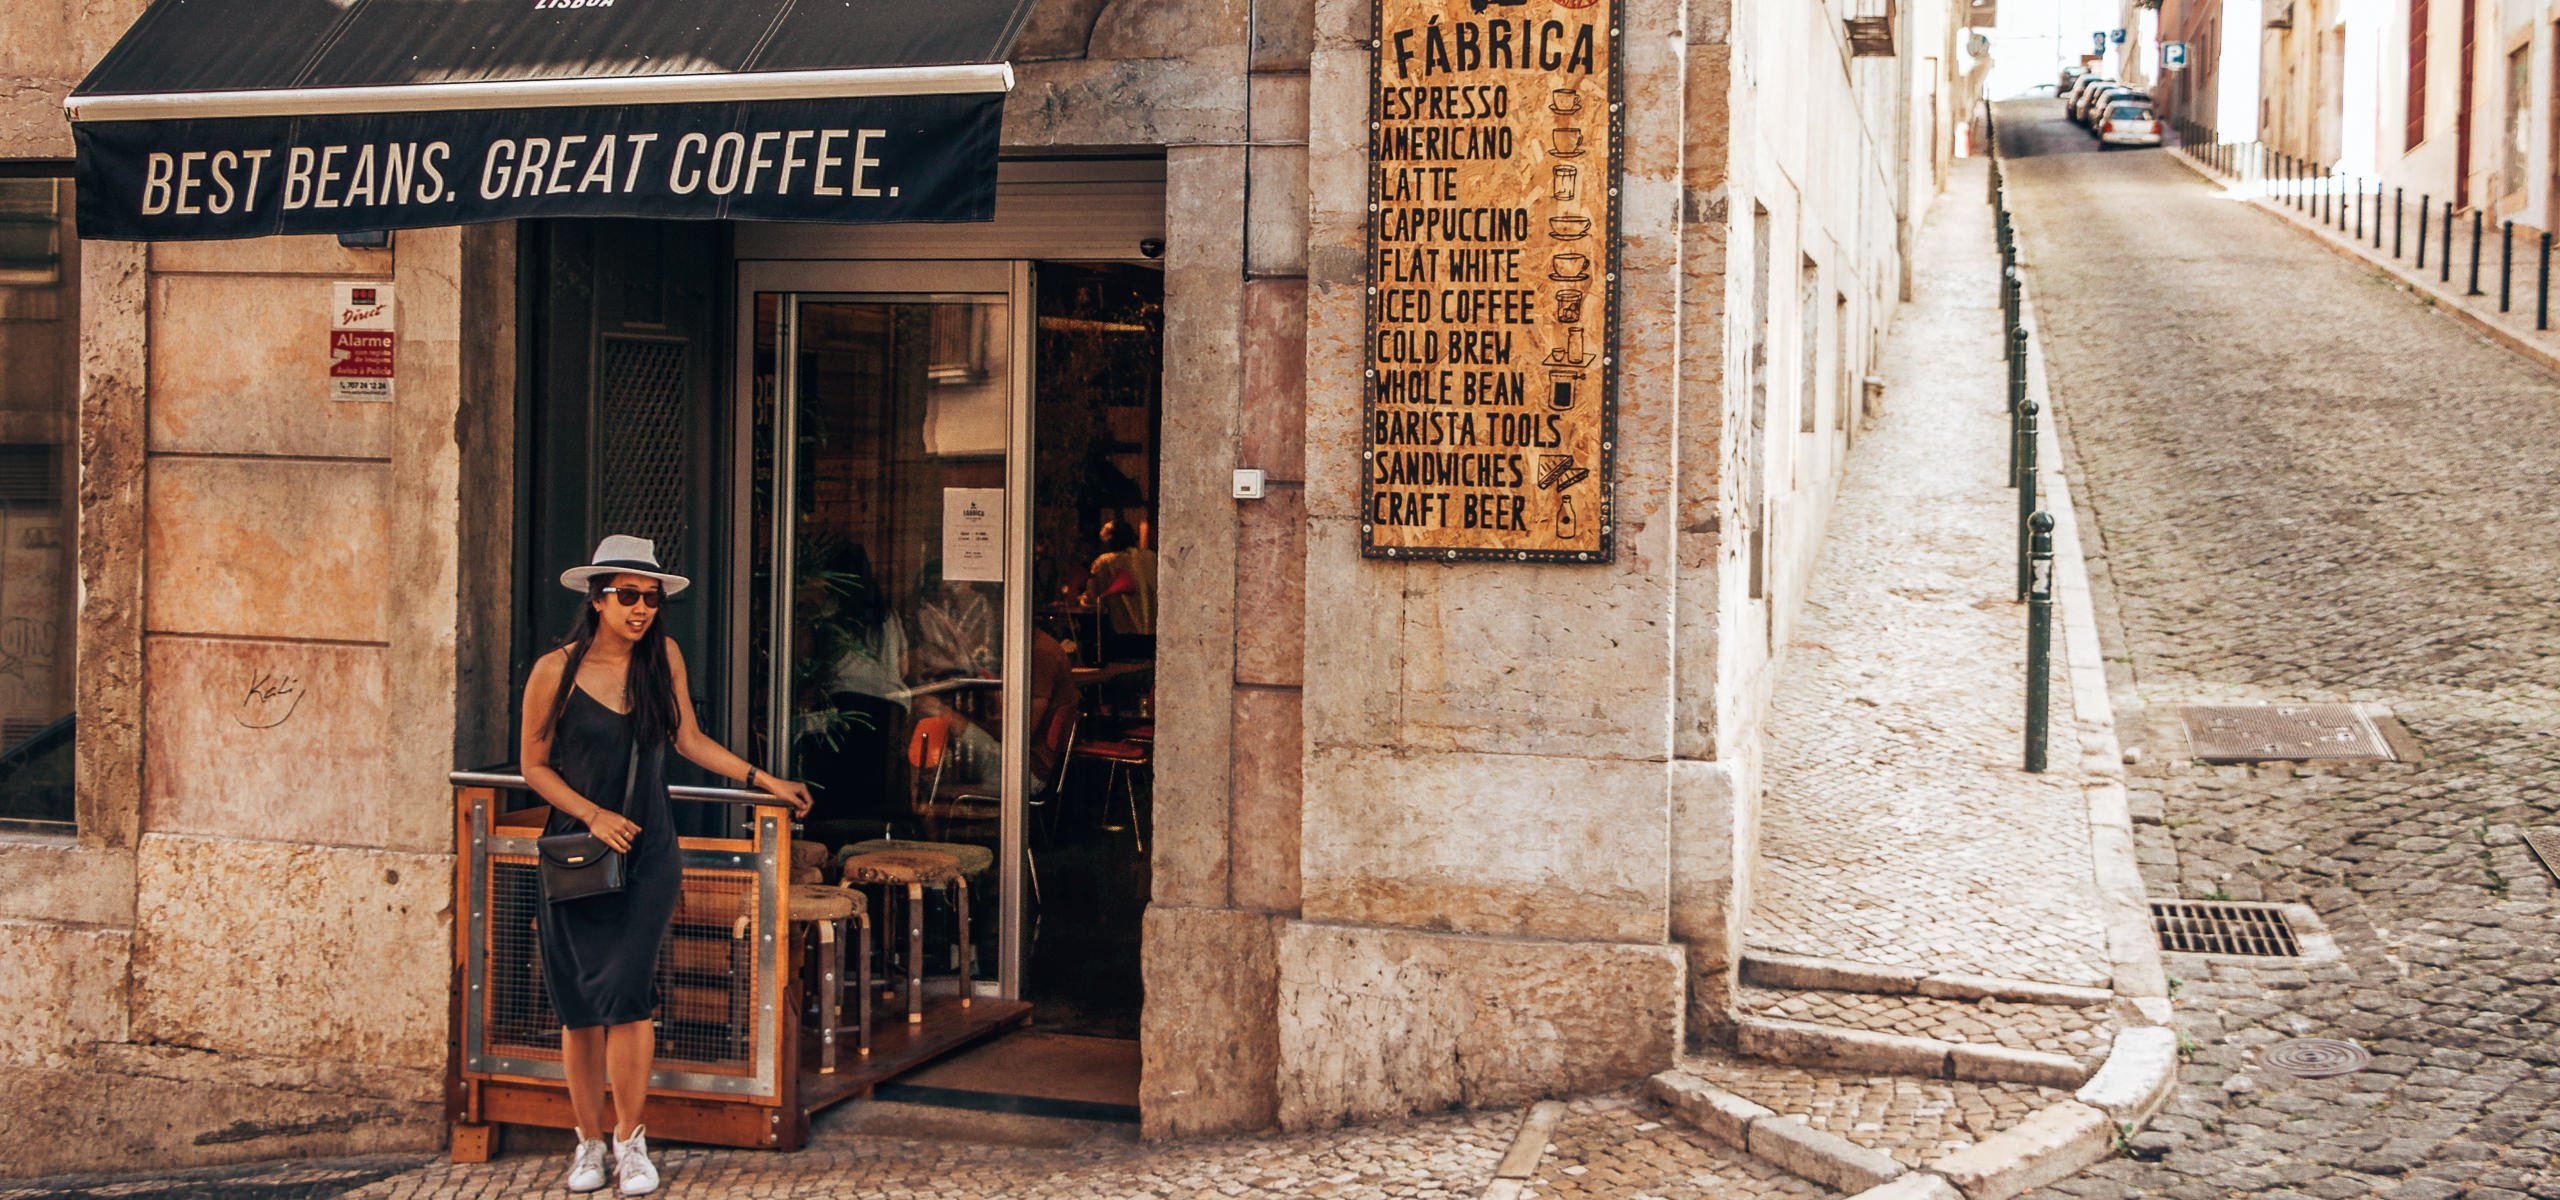 The entrance to Fabrica Coffee Roasters in Lisbon, Portugal